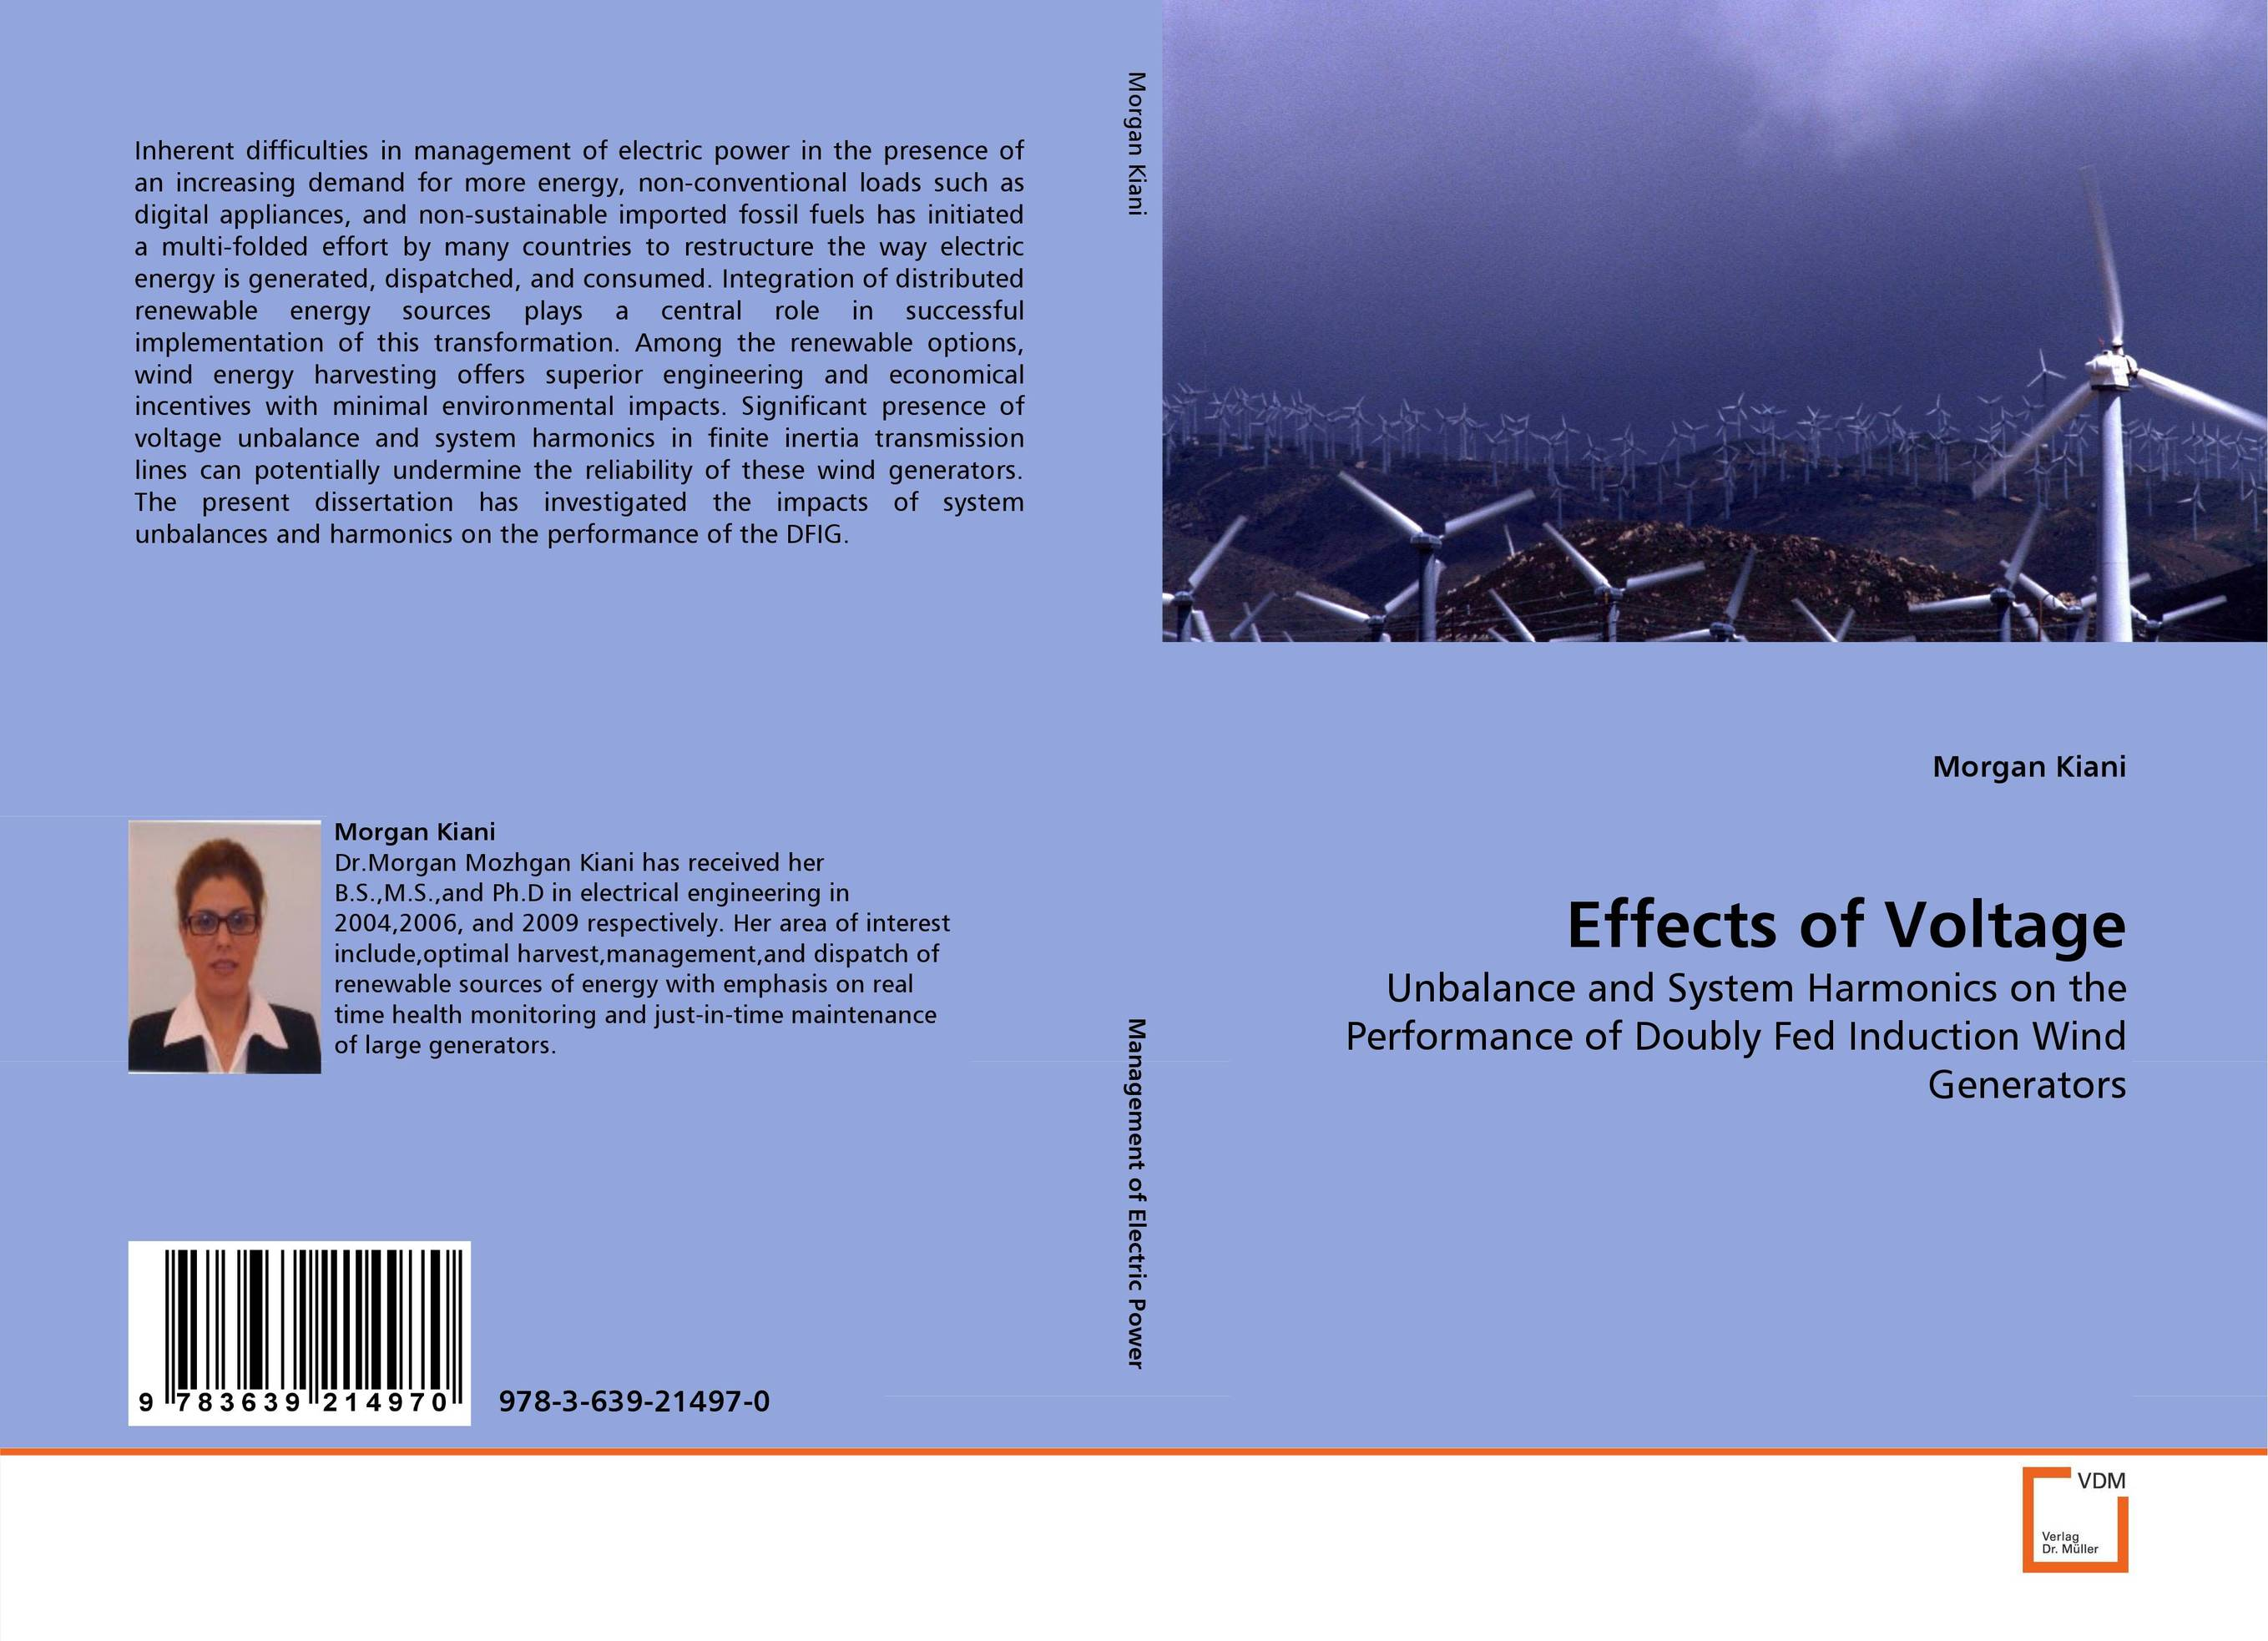 Effects of Voltage wind energy generation modeling for planning of electric power system